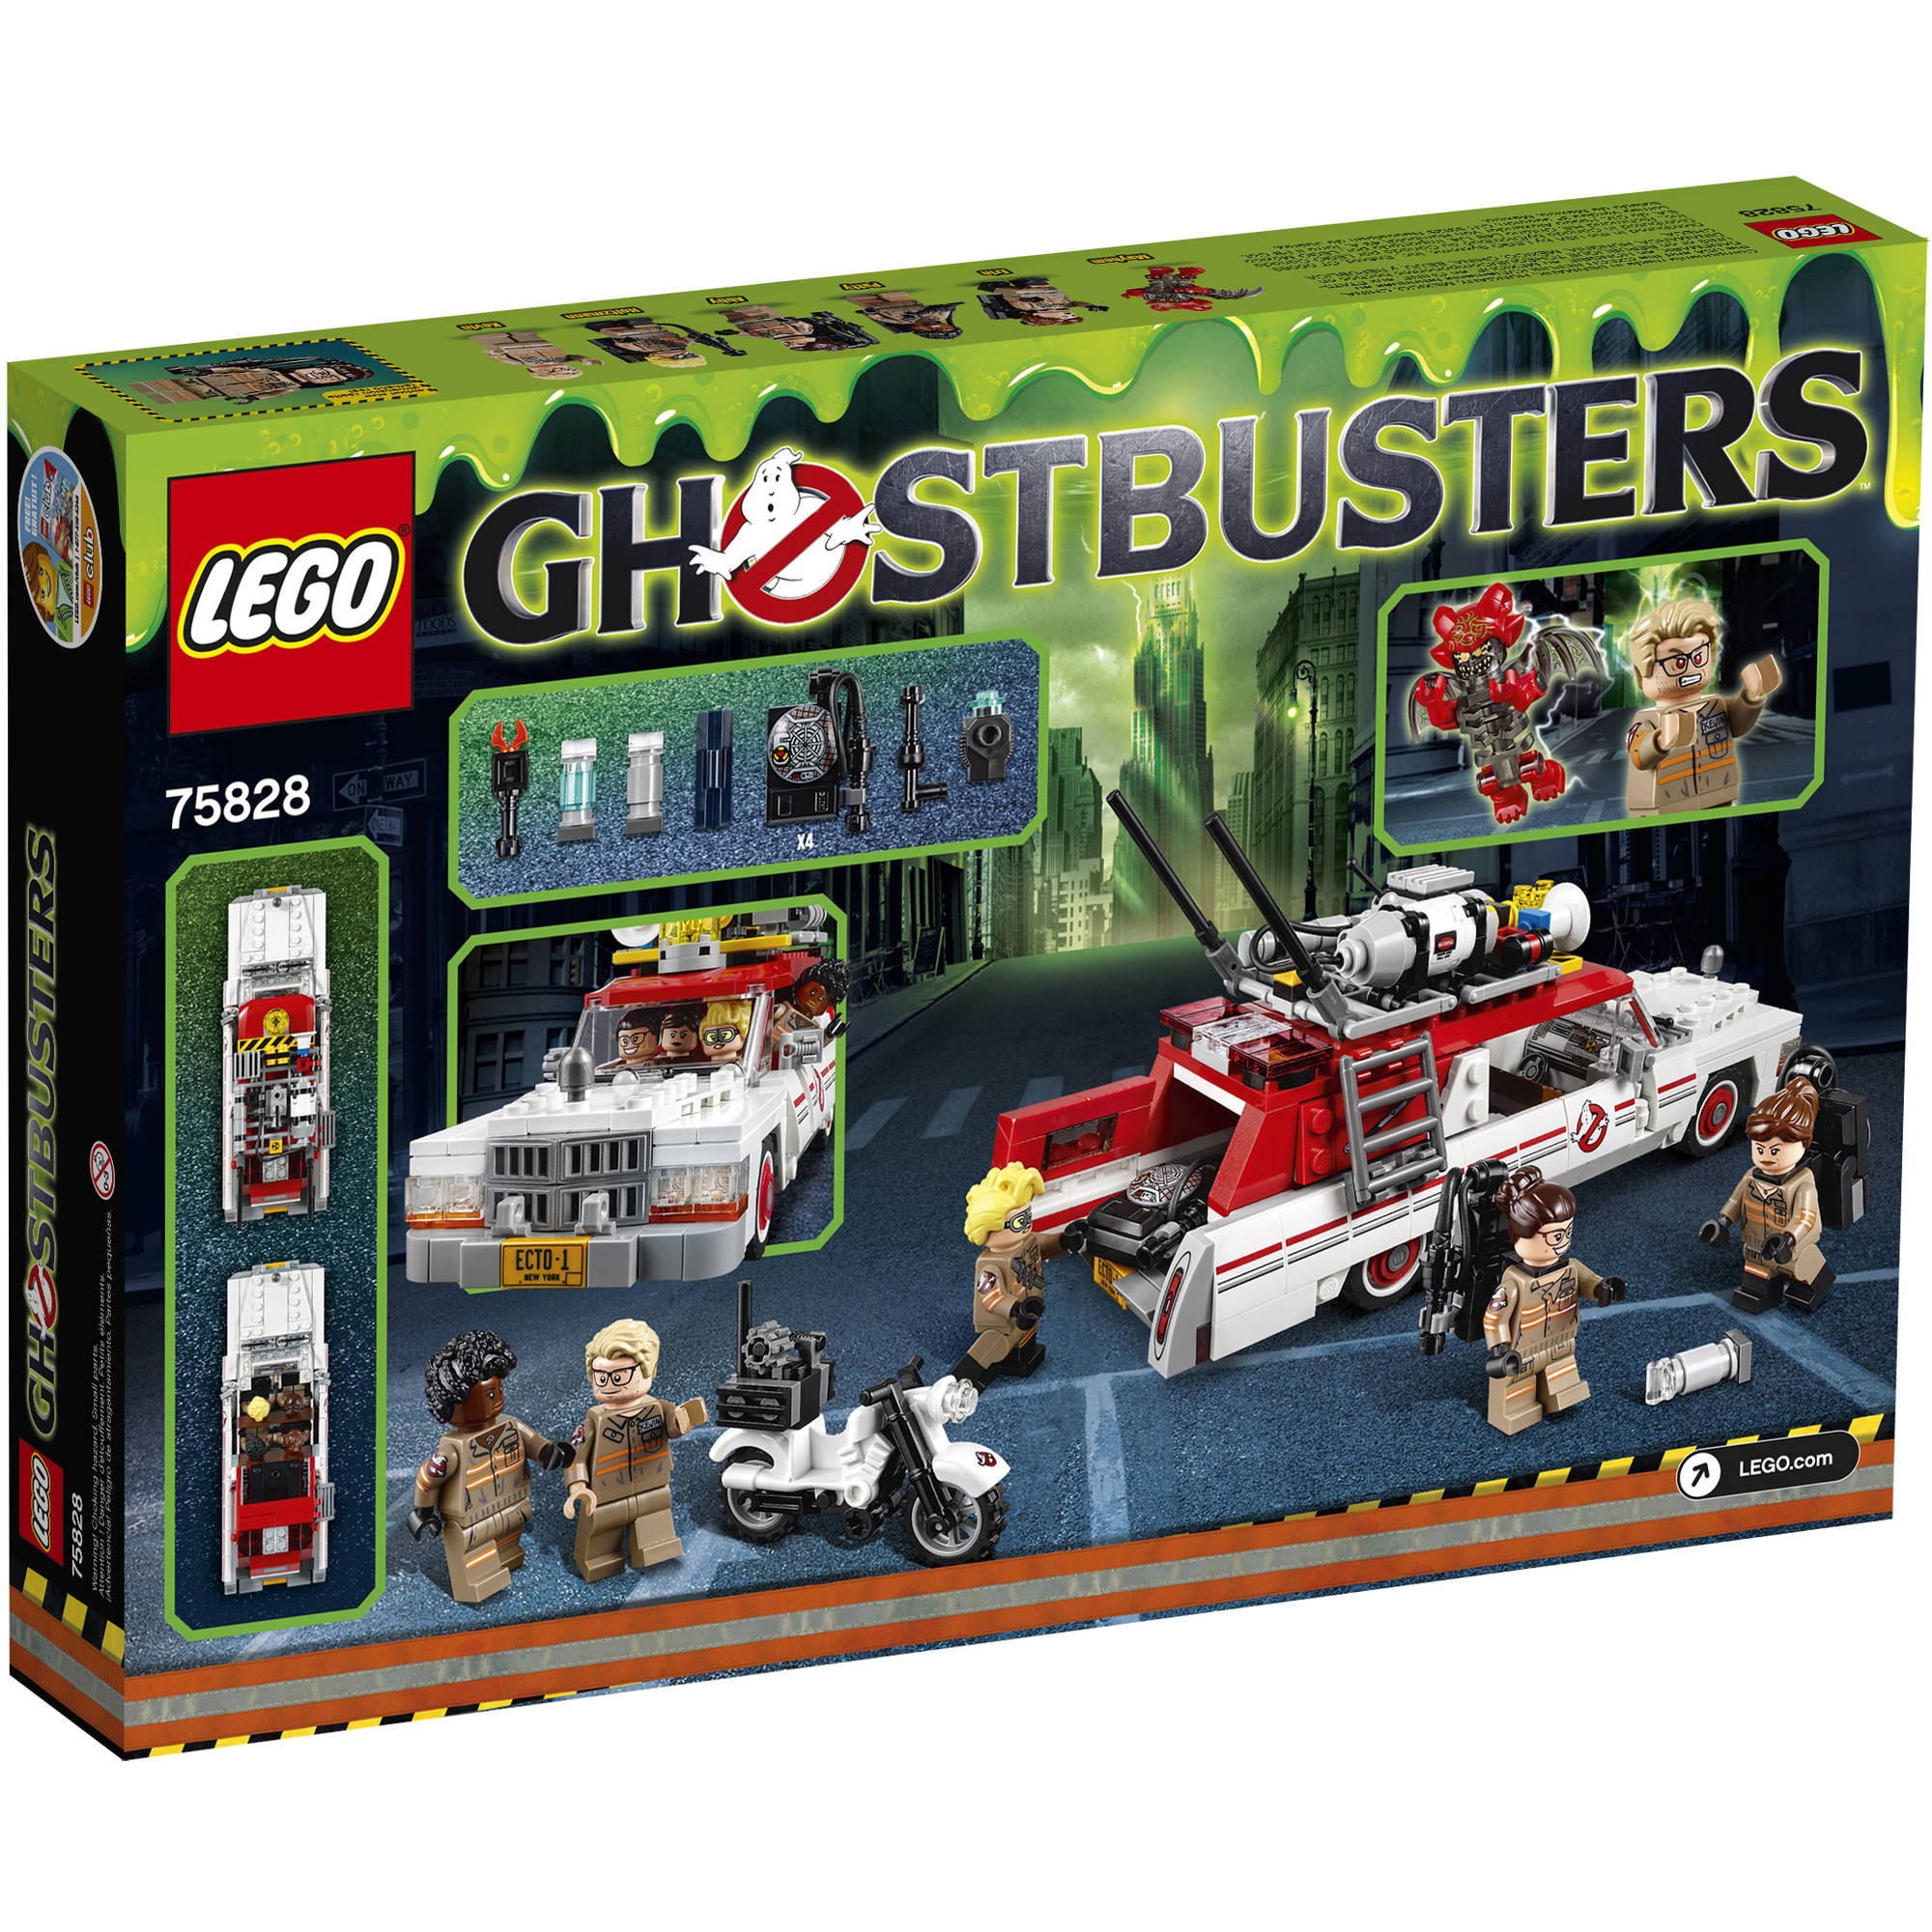 Lego Ghostbusters 2016 Ecto 1 And Ecto 2 Building Set Walmartcom - lego ghostbusters coloring pages